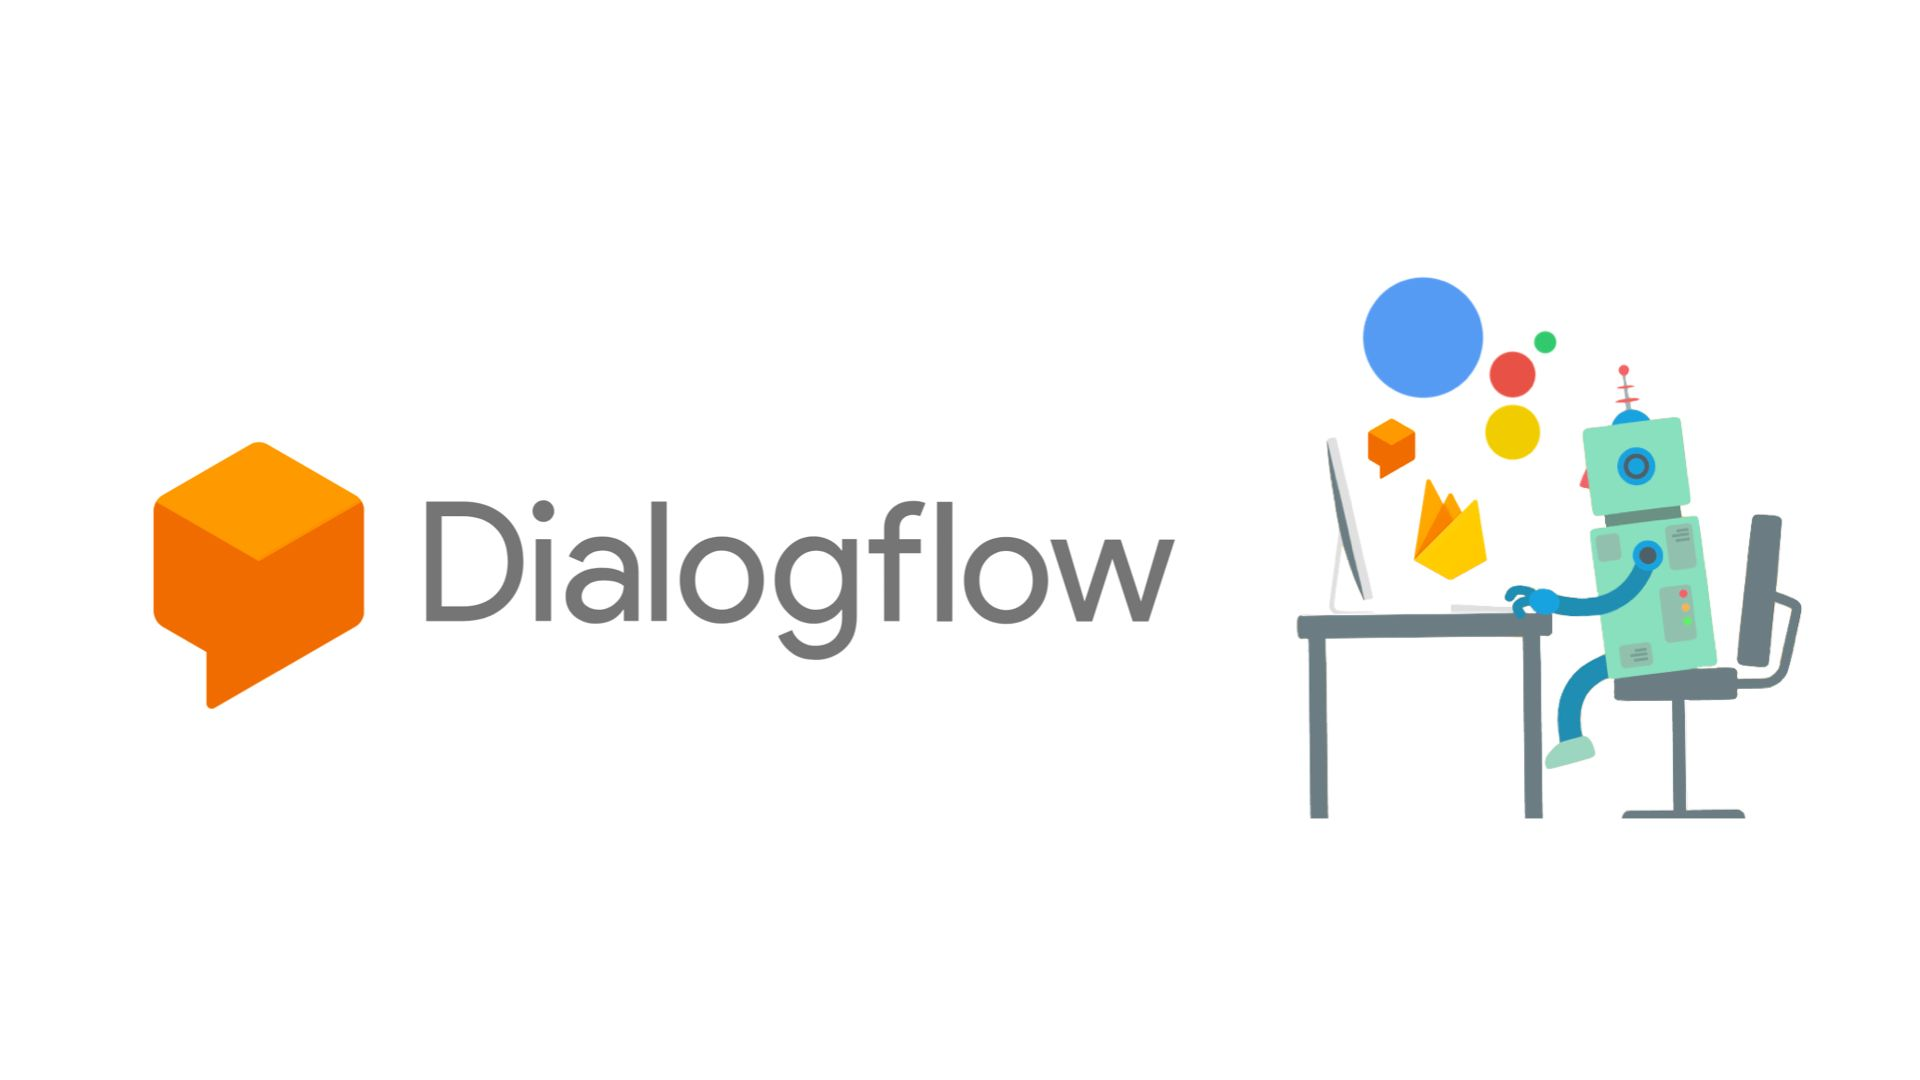 6 Best Dialogflow Courses & Tutorials - Learn Dialogflow Online